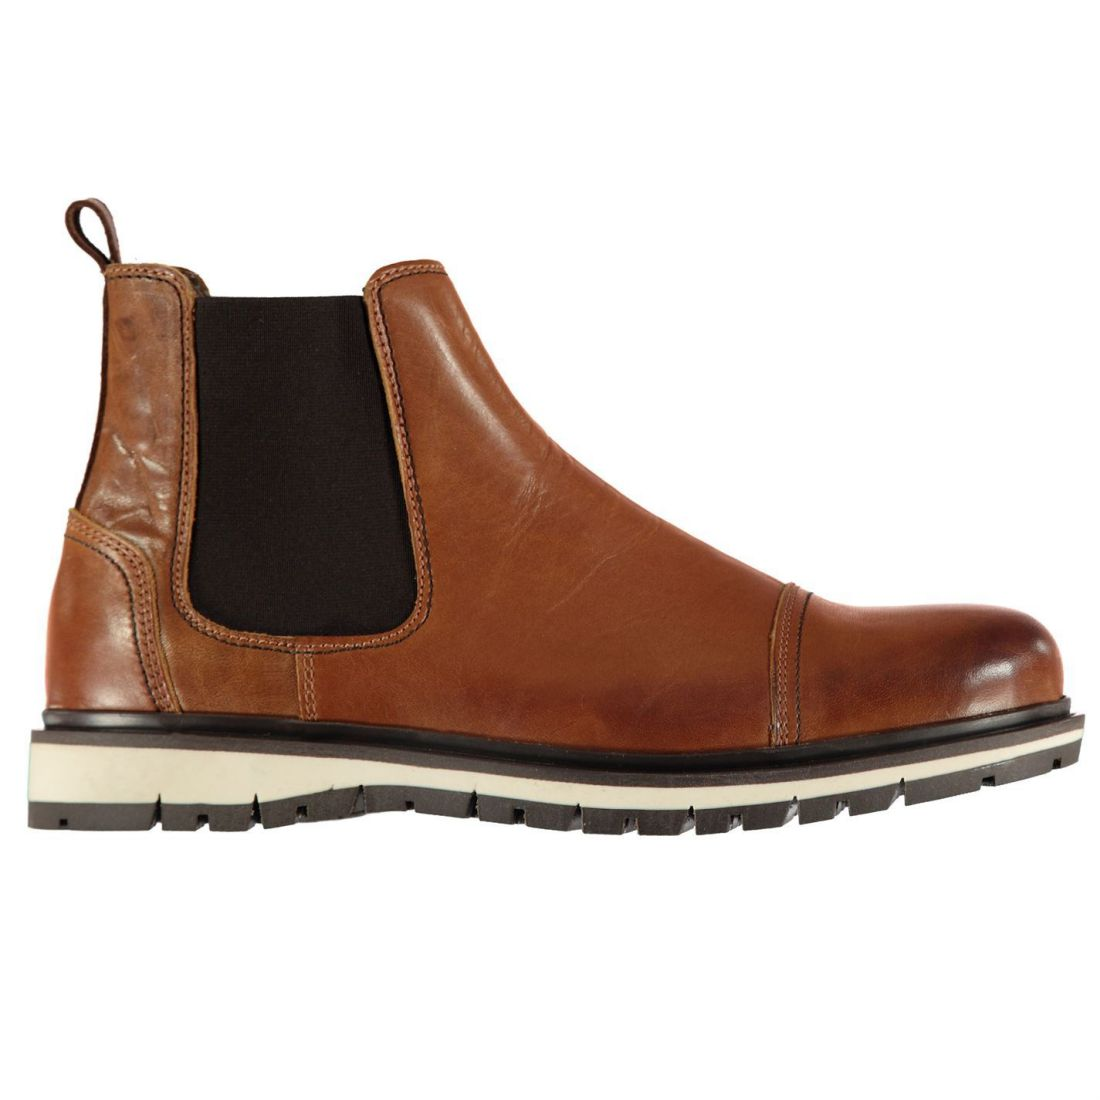 Gents Kipp Tan Mens Firetrap Chelsea Textured Boots Everyday qOaqfZ